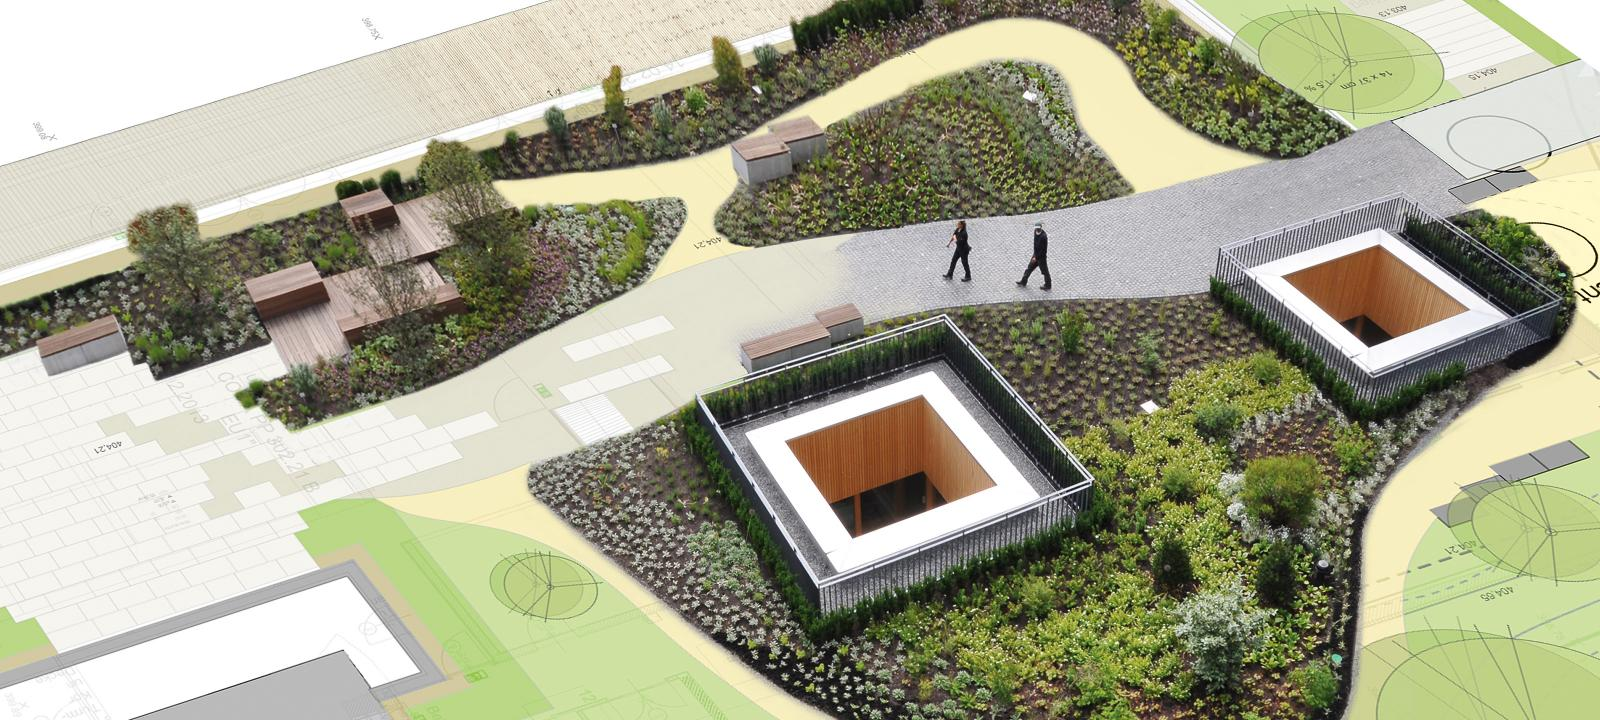 Architectural plan of a green roof